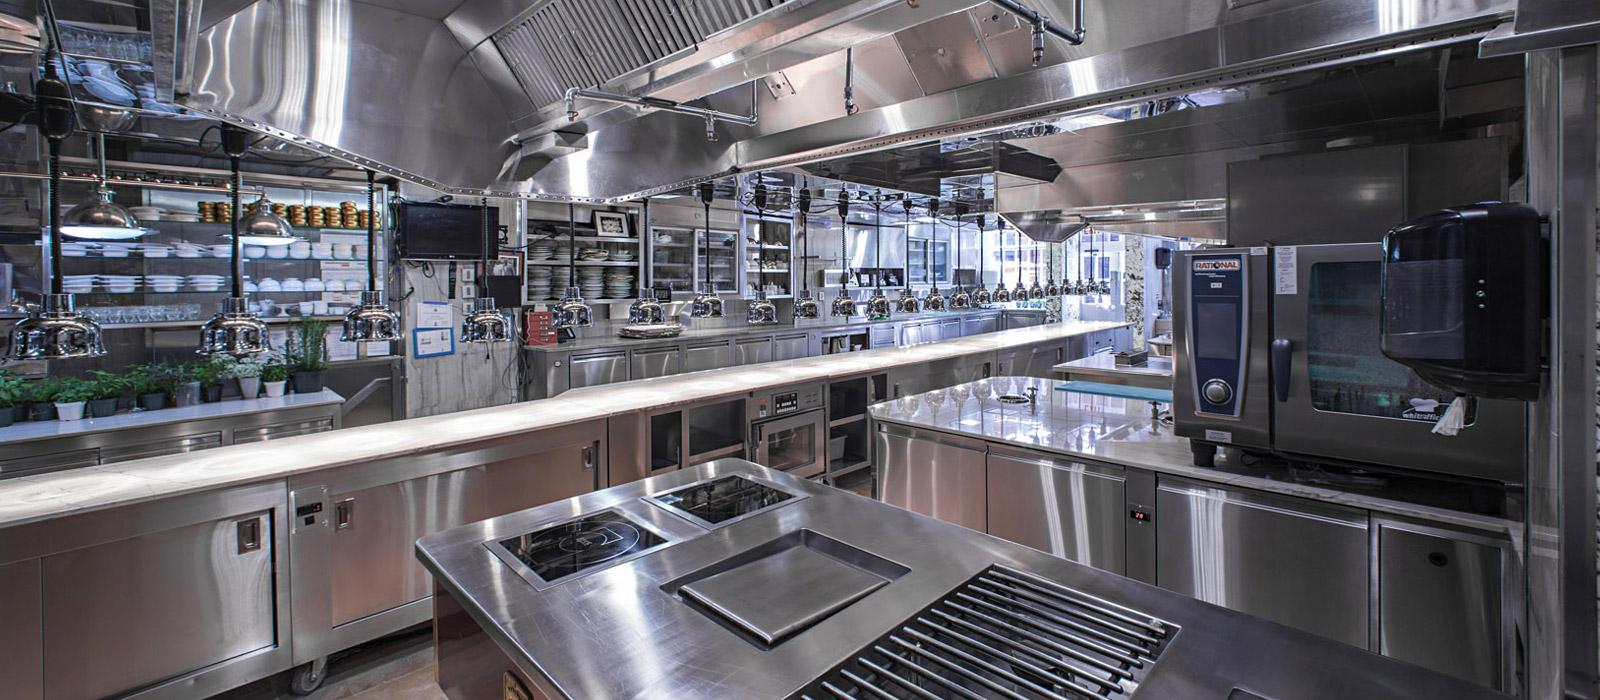 5 Tips to Build best Commercial Kitchen from Scratch